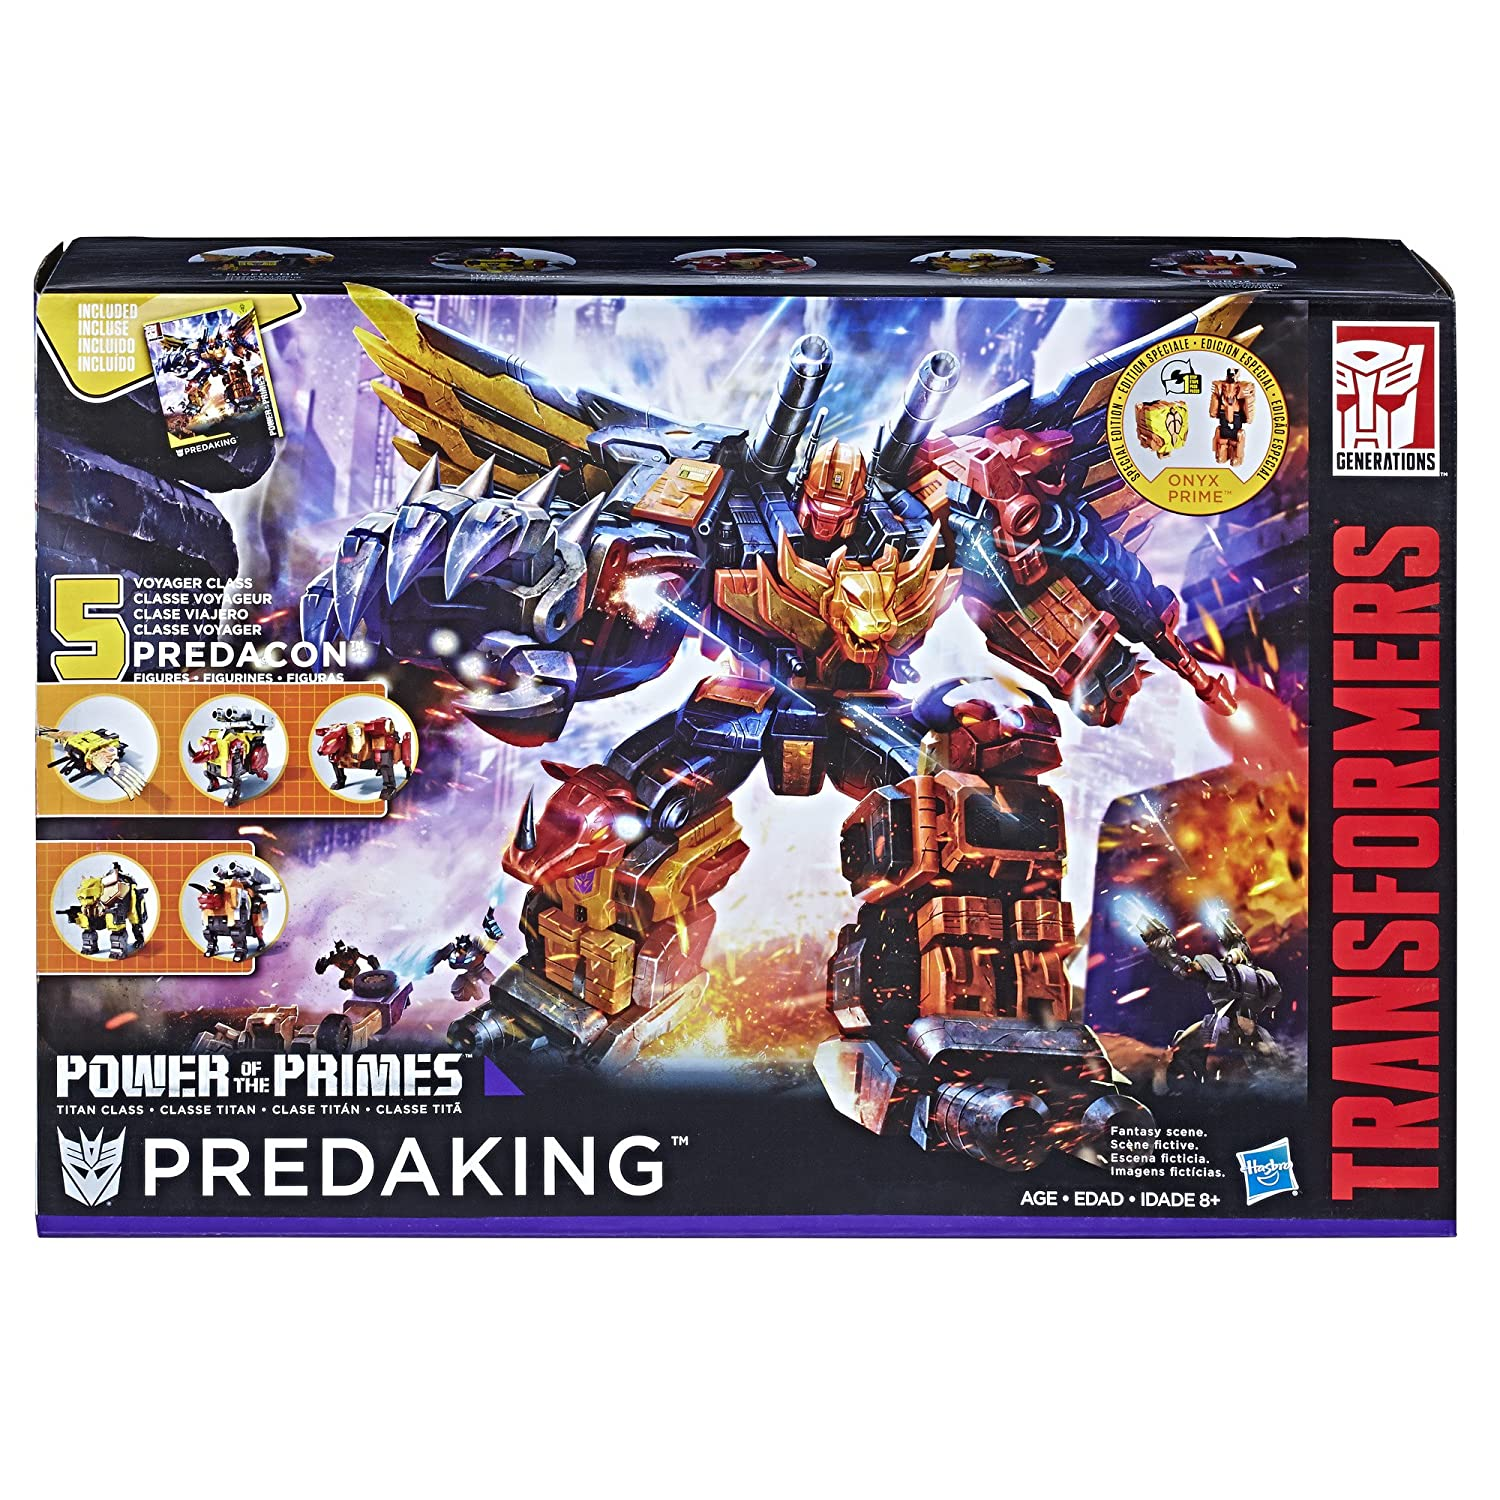 Transformers News: Big Black Friday Savings for Transformers in the US and Canada including Predaking and MPs